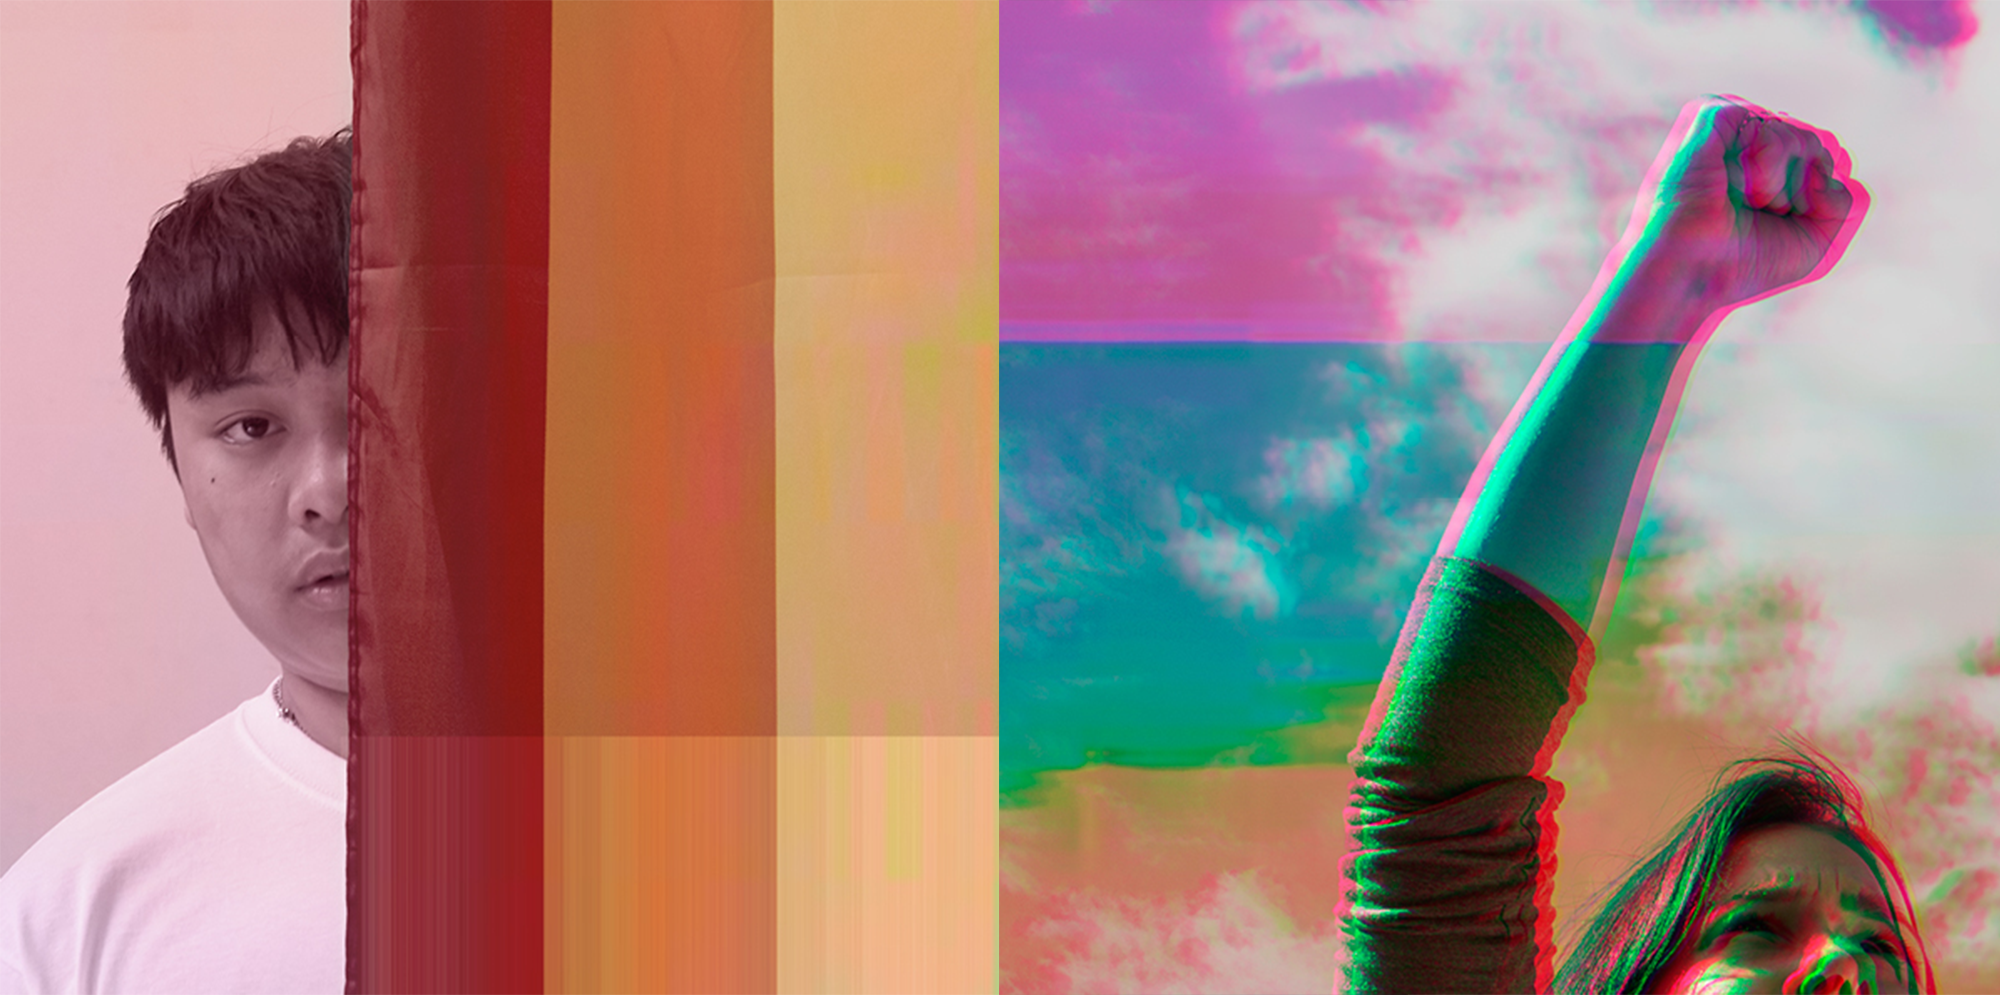 images with glitch fliters on top